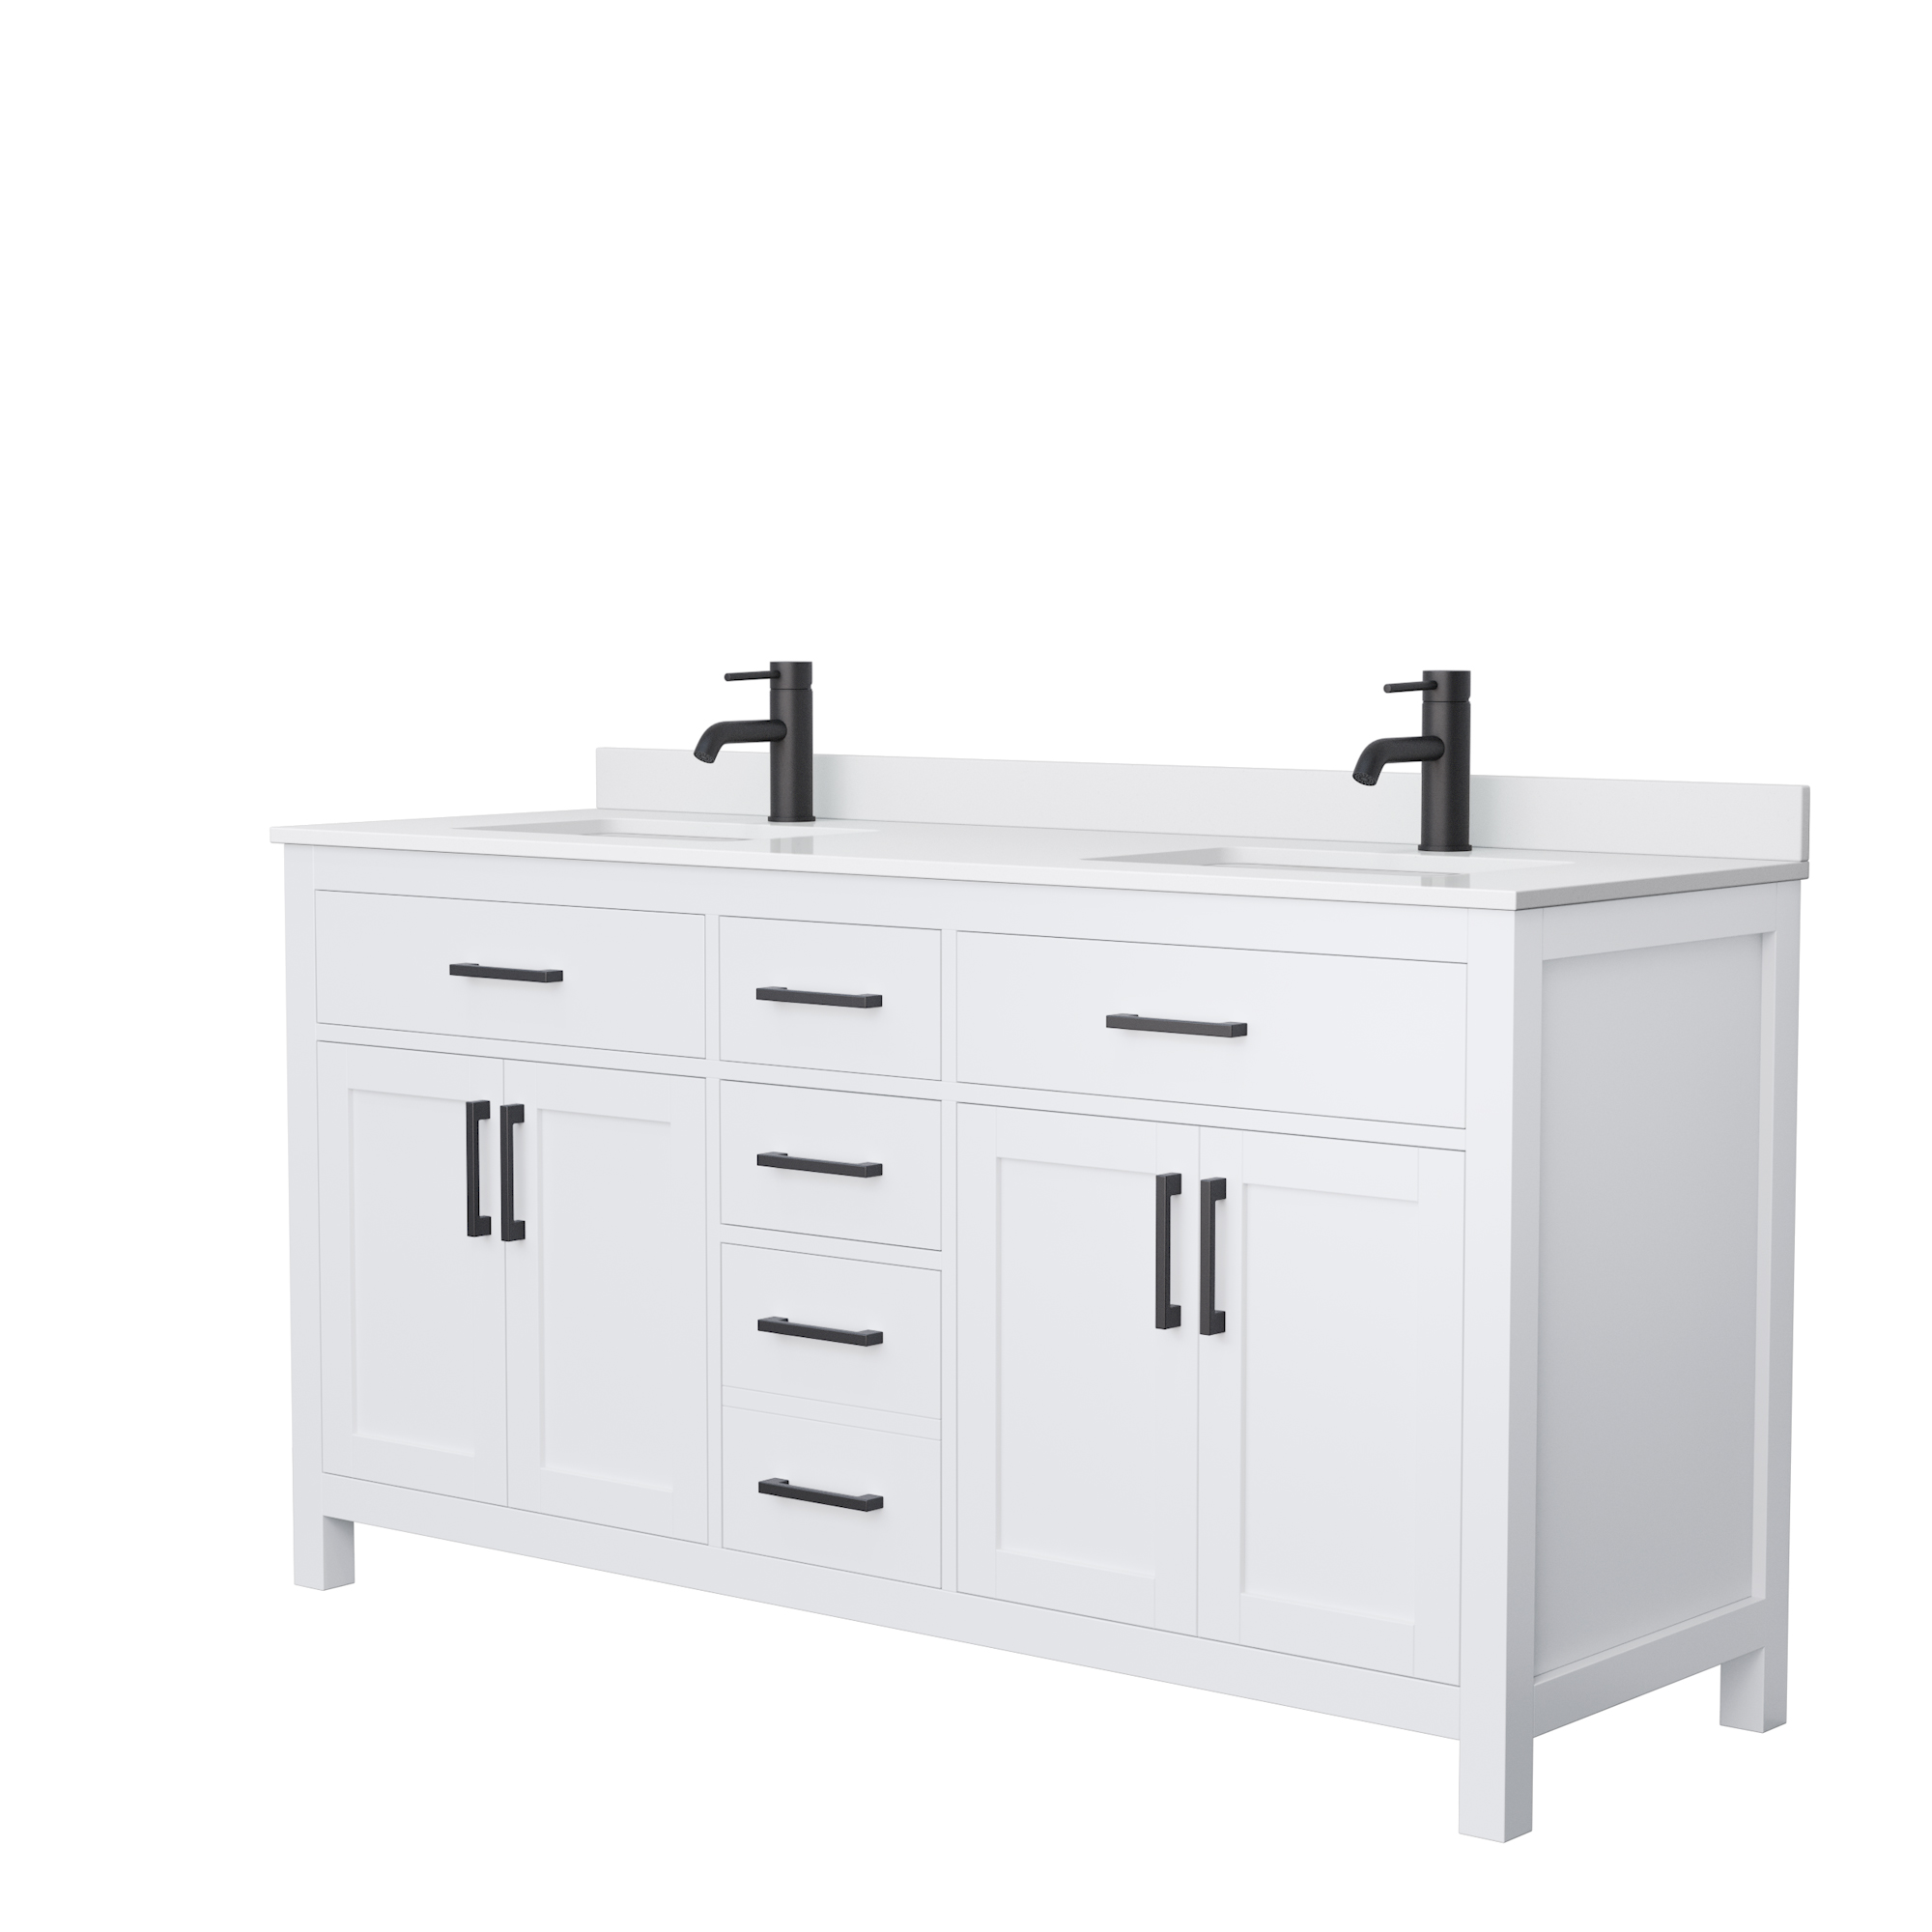 Beckett 66 Double Bathroom Vanity White Beautiful Bathroom Furniture For Every Home Wyndham Collection